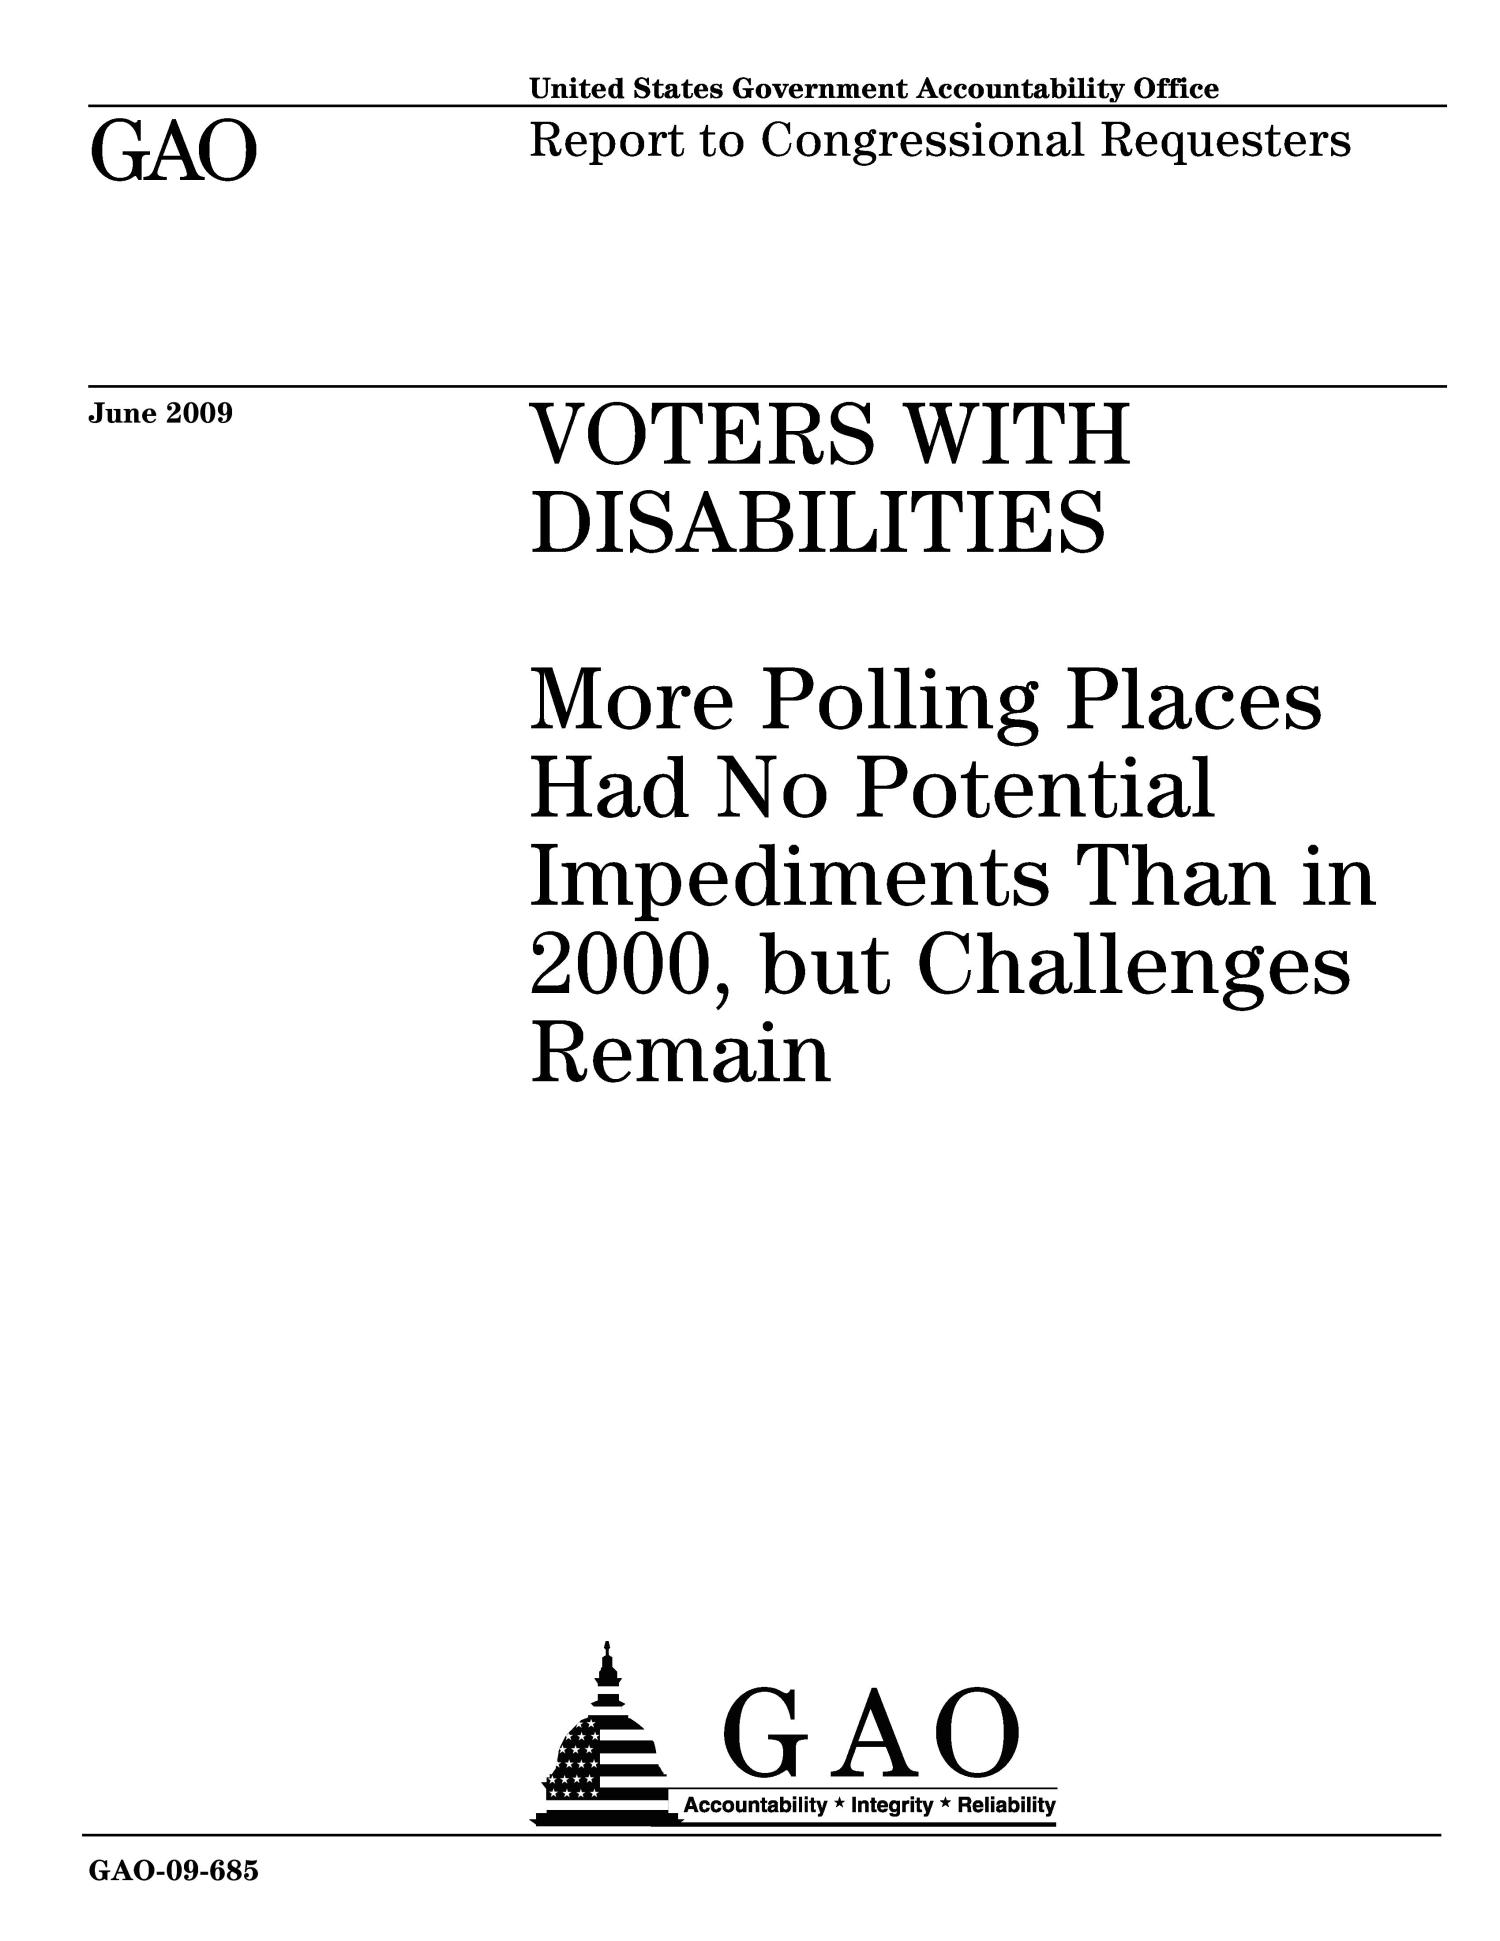 Voters With Disabilities: More Polling Places Had No Potential Impediments Than in 2000, but Challenges Remain                                                                                                      [Sequence #]: 1 of 47